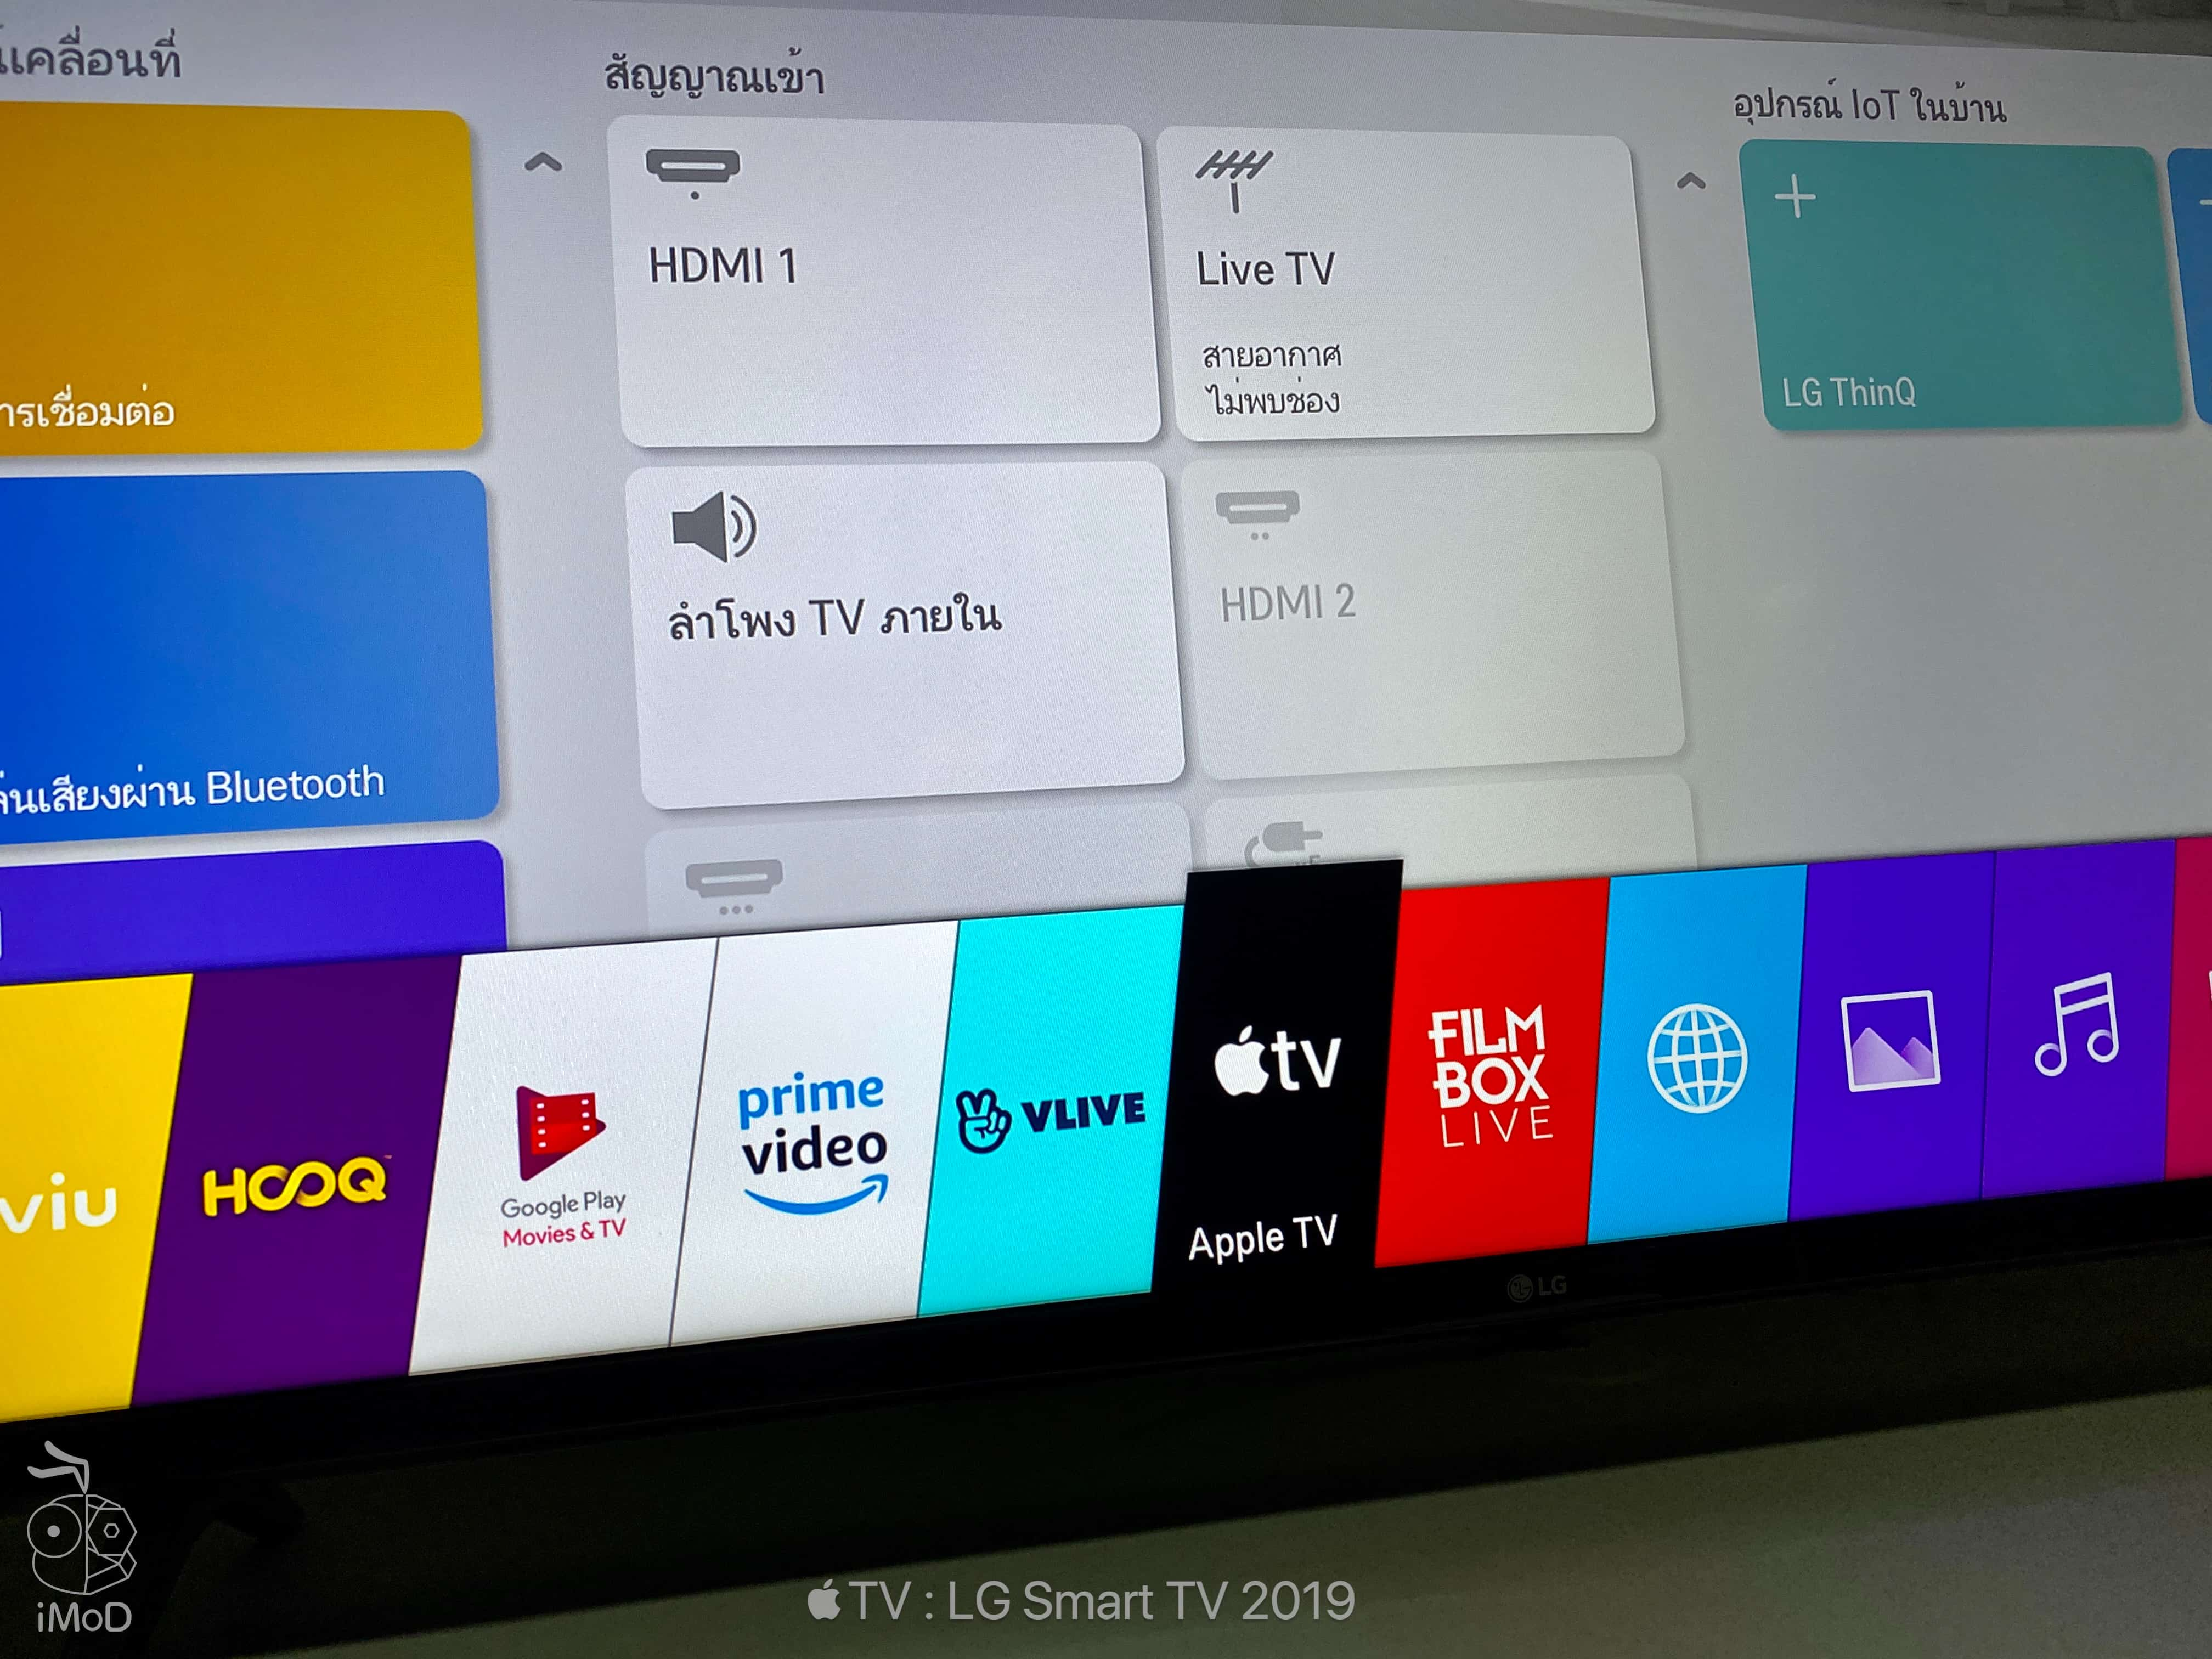 Apple Tv Available Lg Smart Tv 2019 Img 1